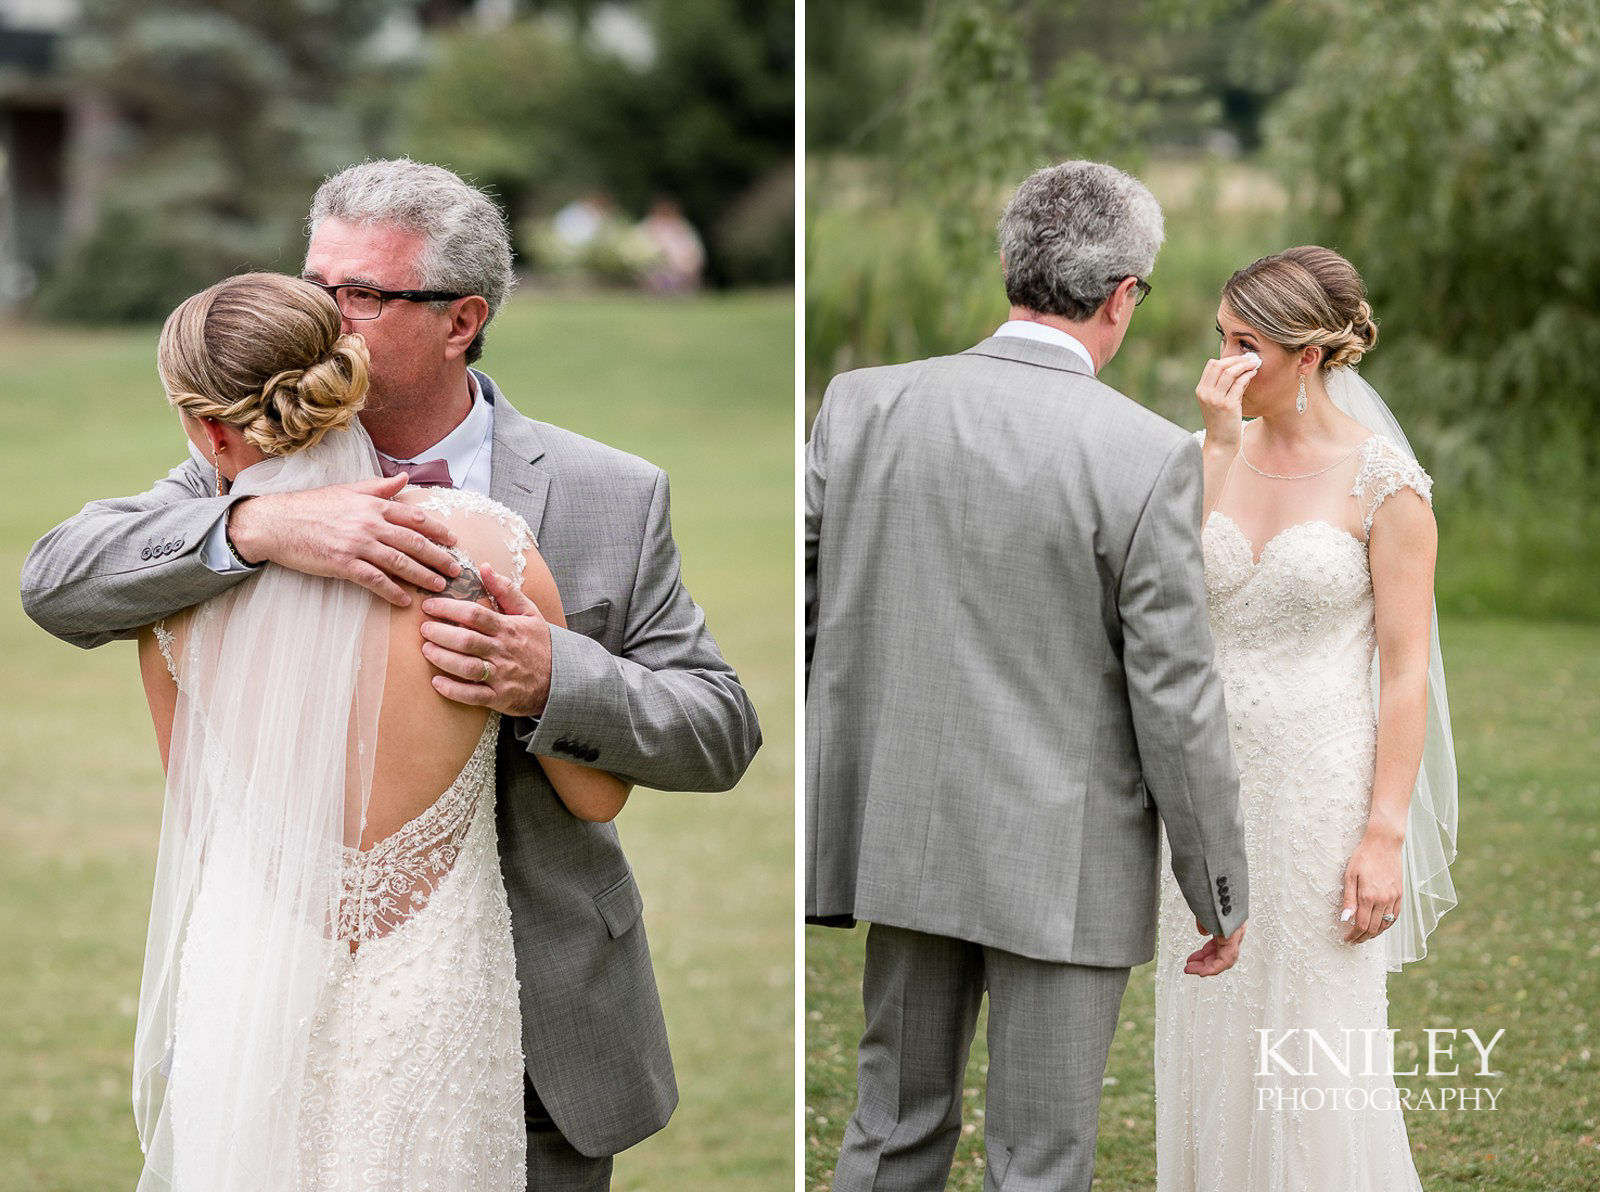 023 - Ontario Golf Club Wedding Pictures collage.jpg